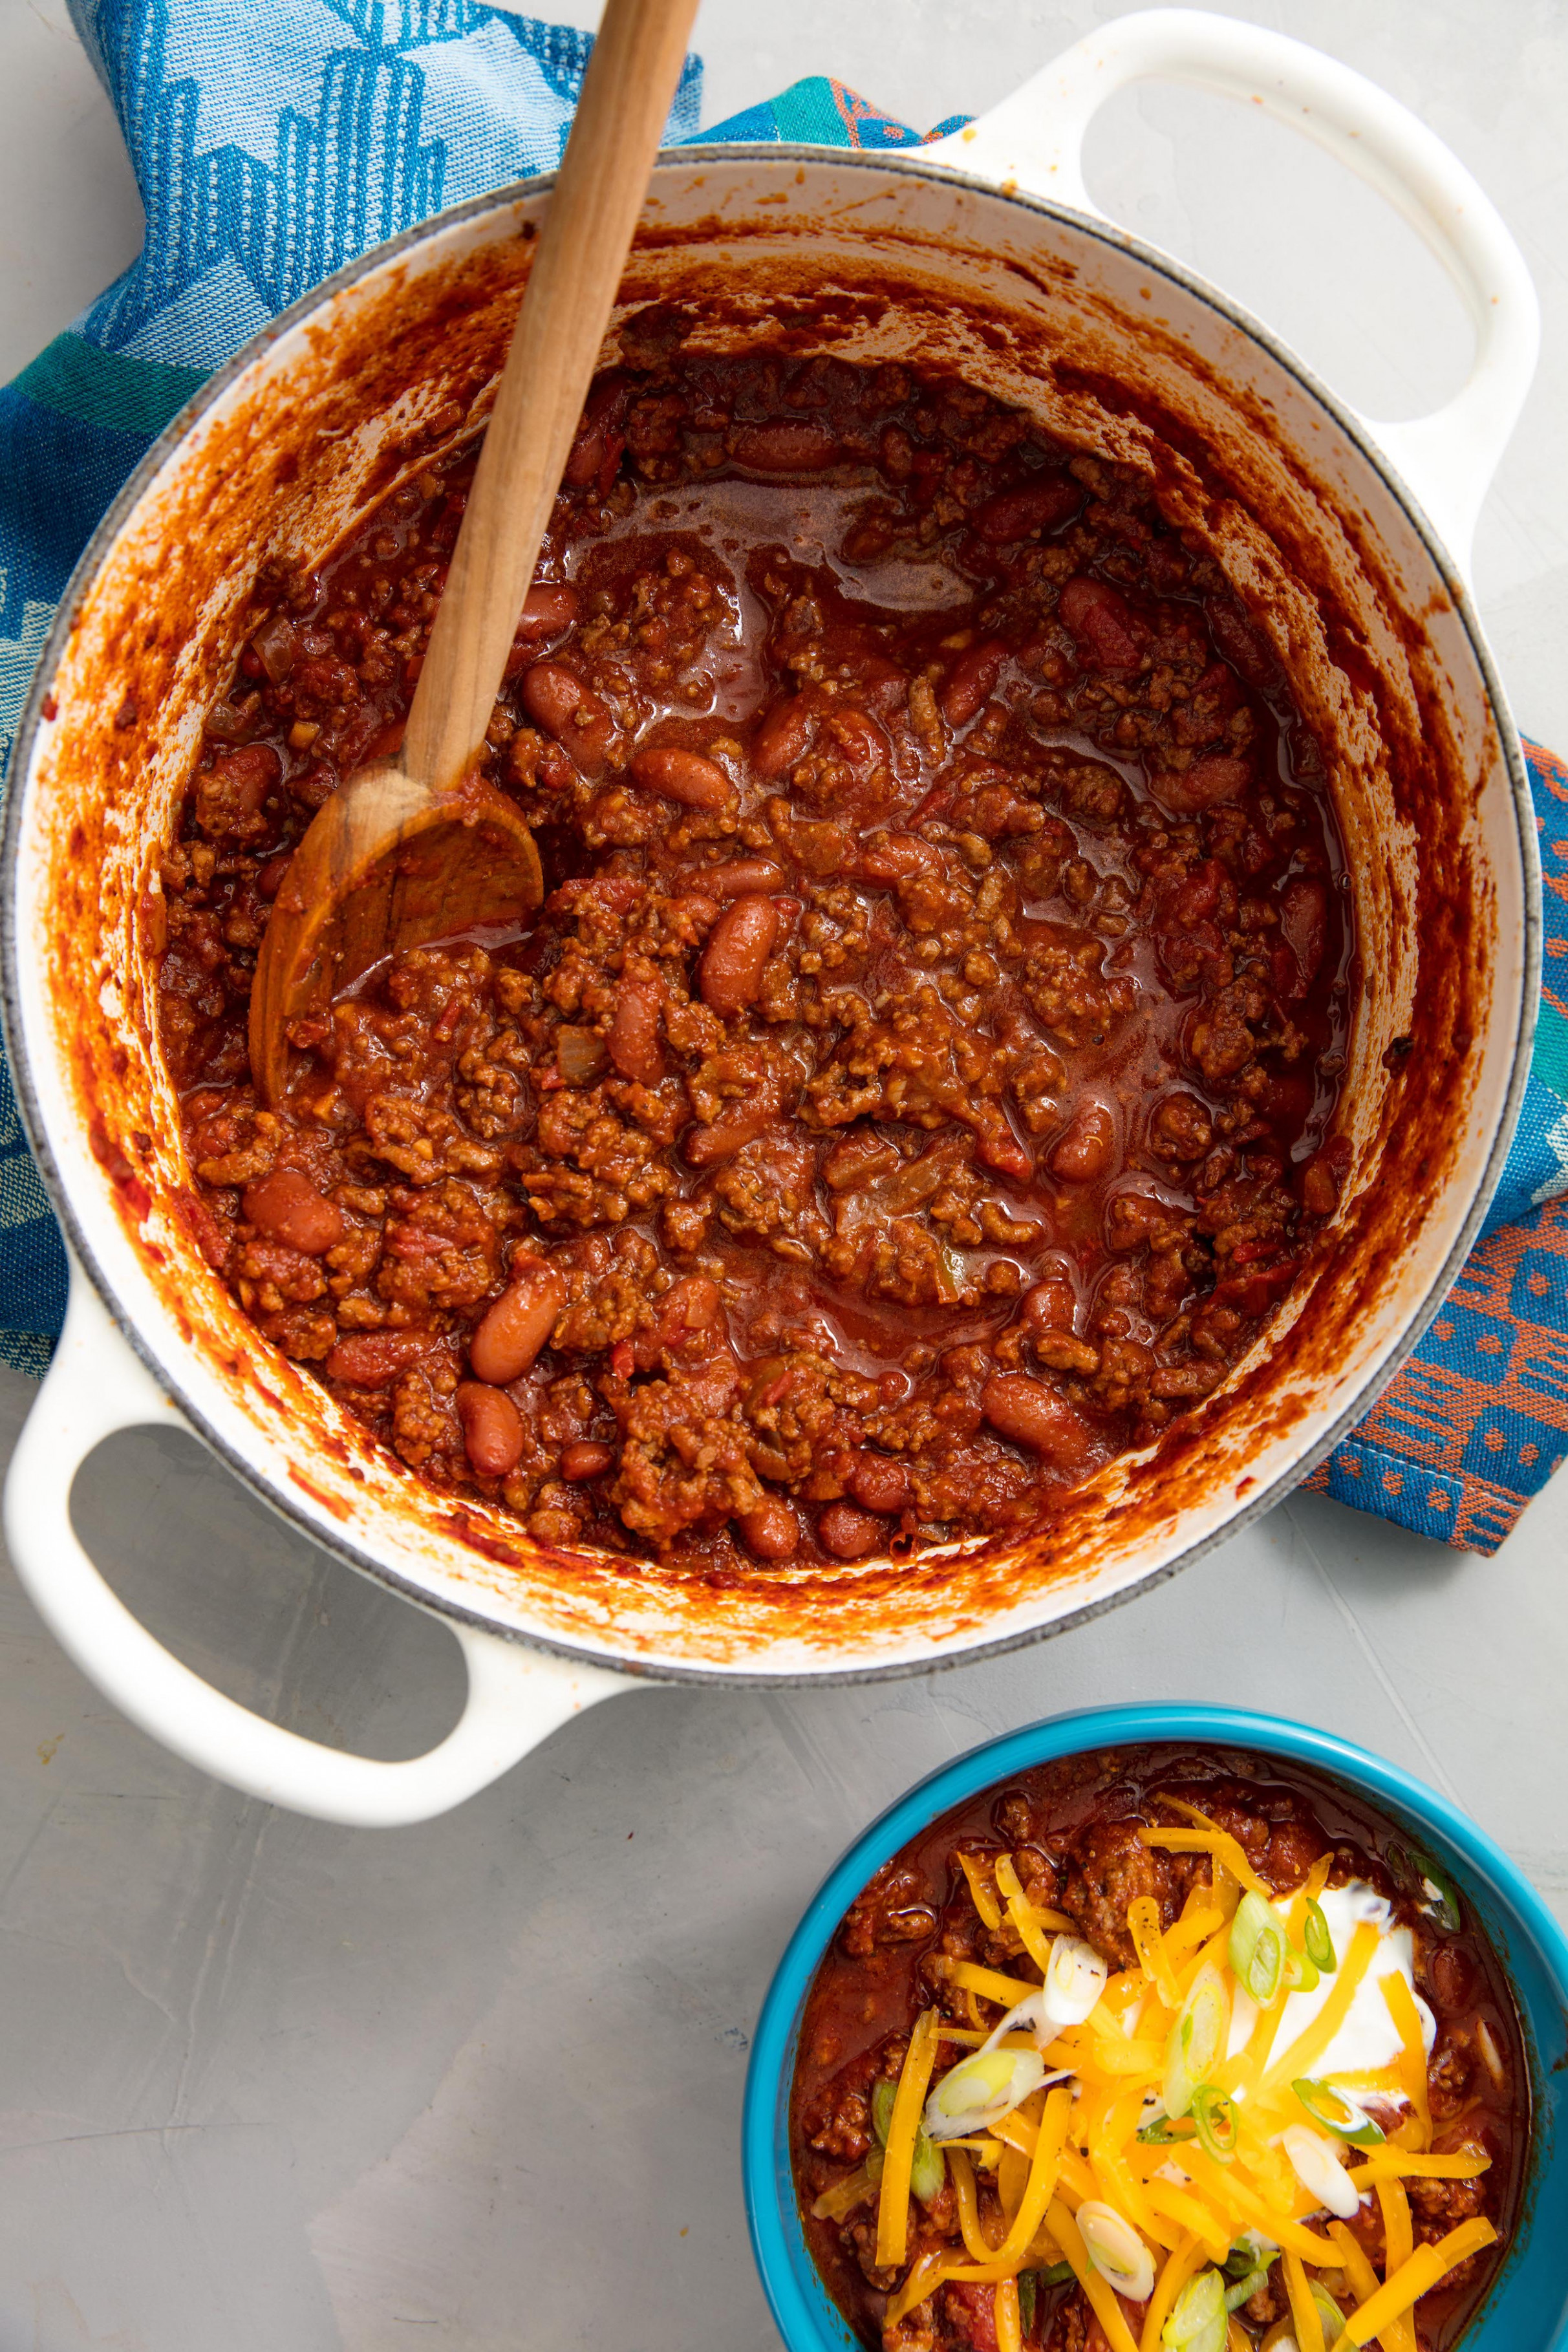 50+ Easy Chili Recipes - Homemade Chili from Scratch ...